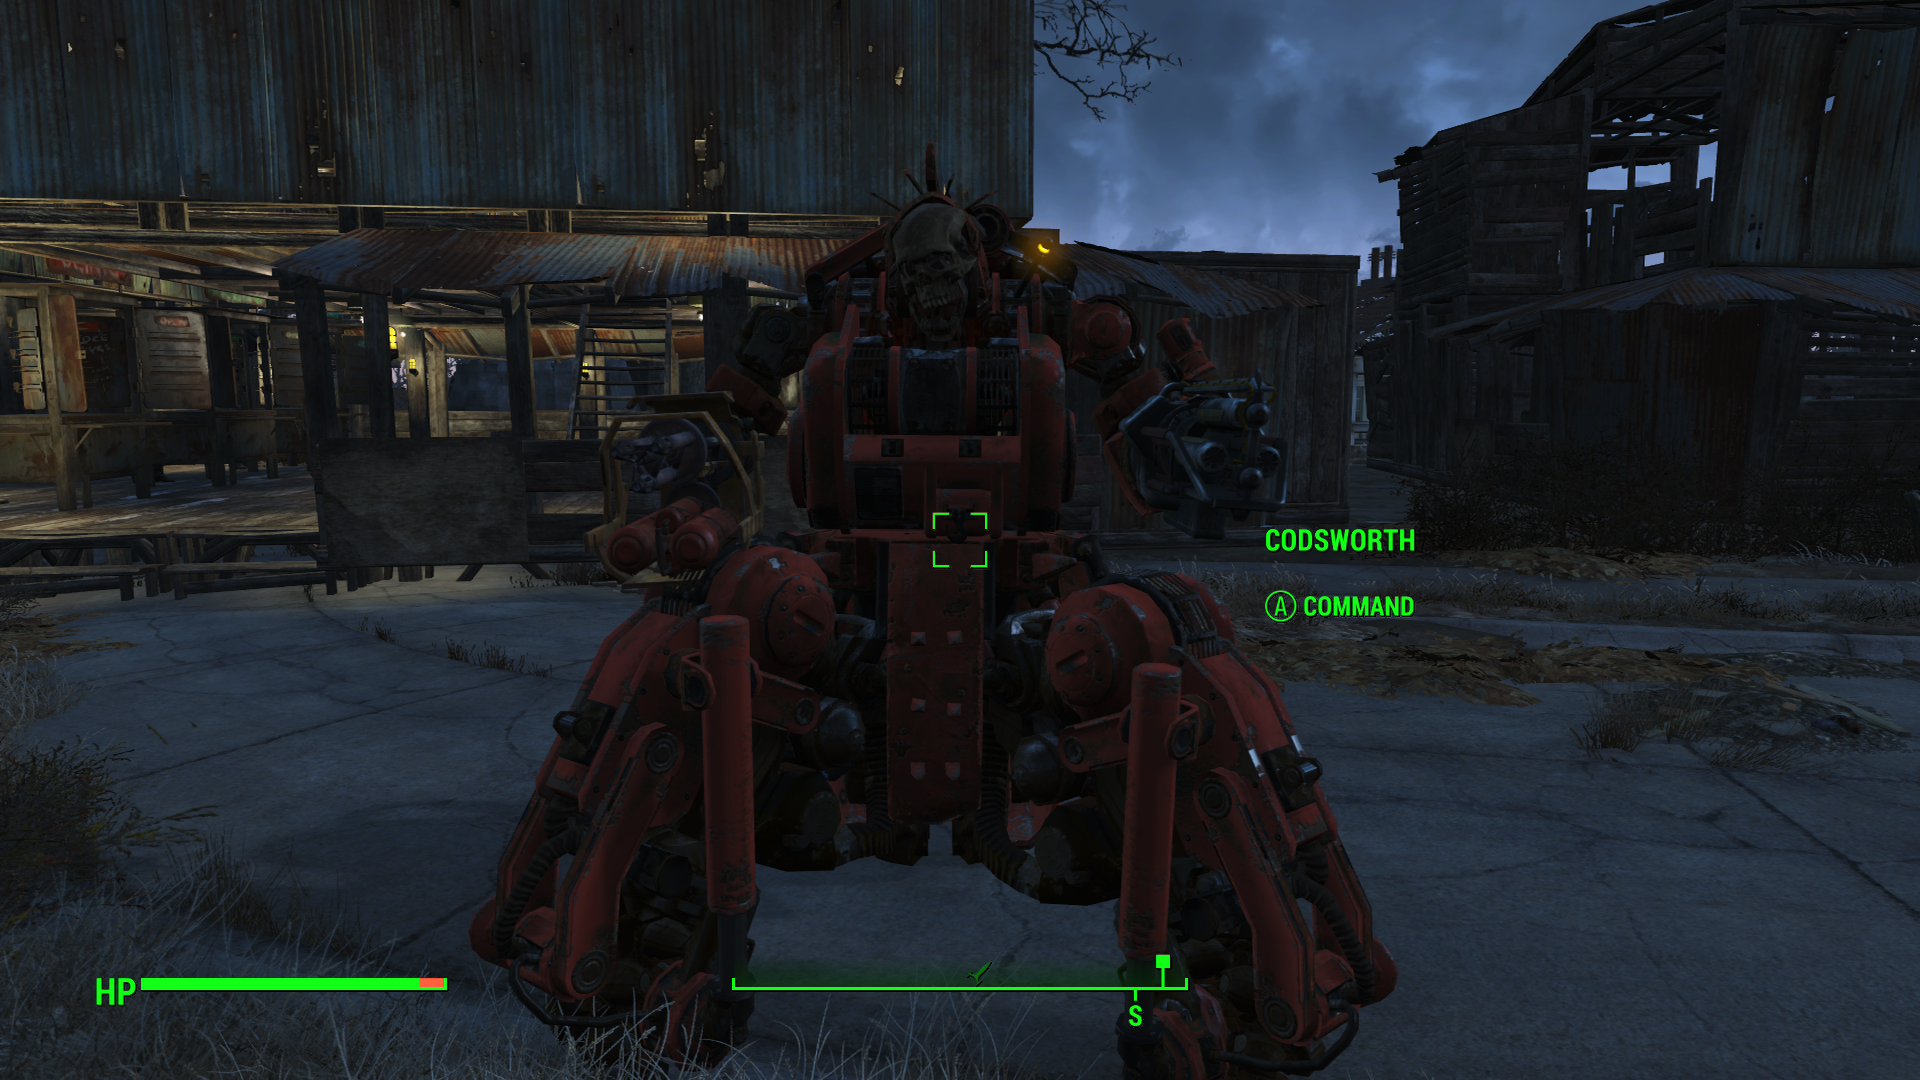 fallout 4 players are turning codsworth into a monster in the new dlc kotaku australia. Black Bedroom Furniture Sets. Home Design Ideas